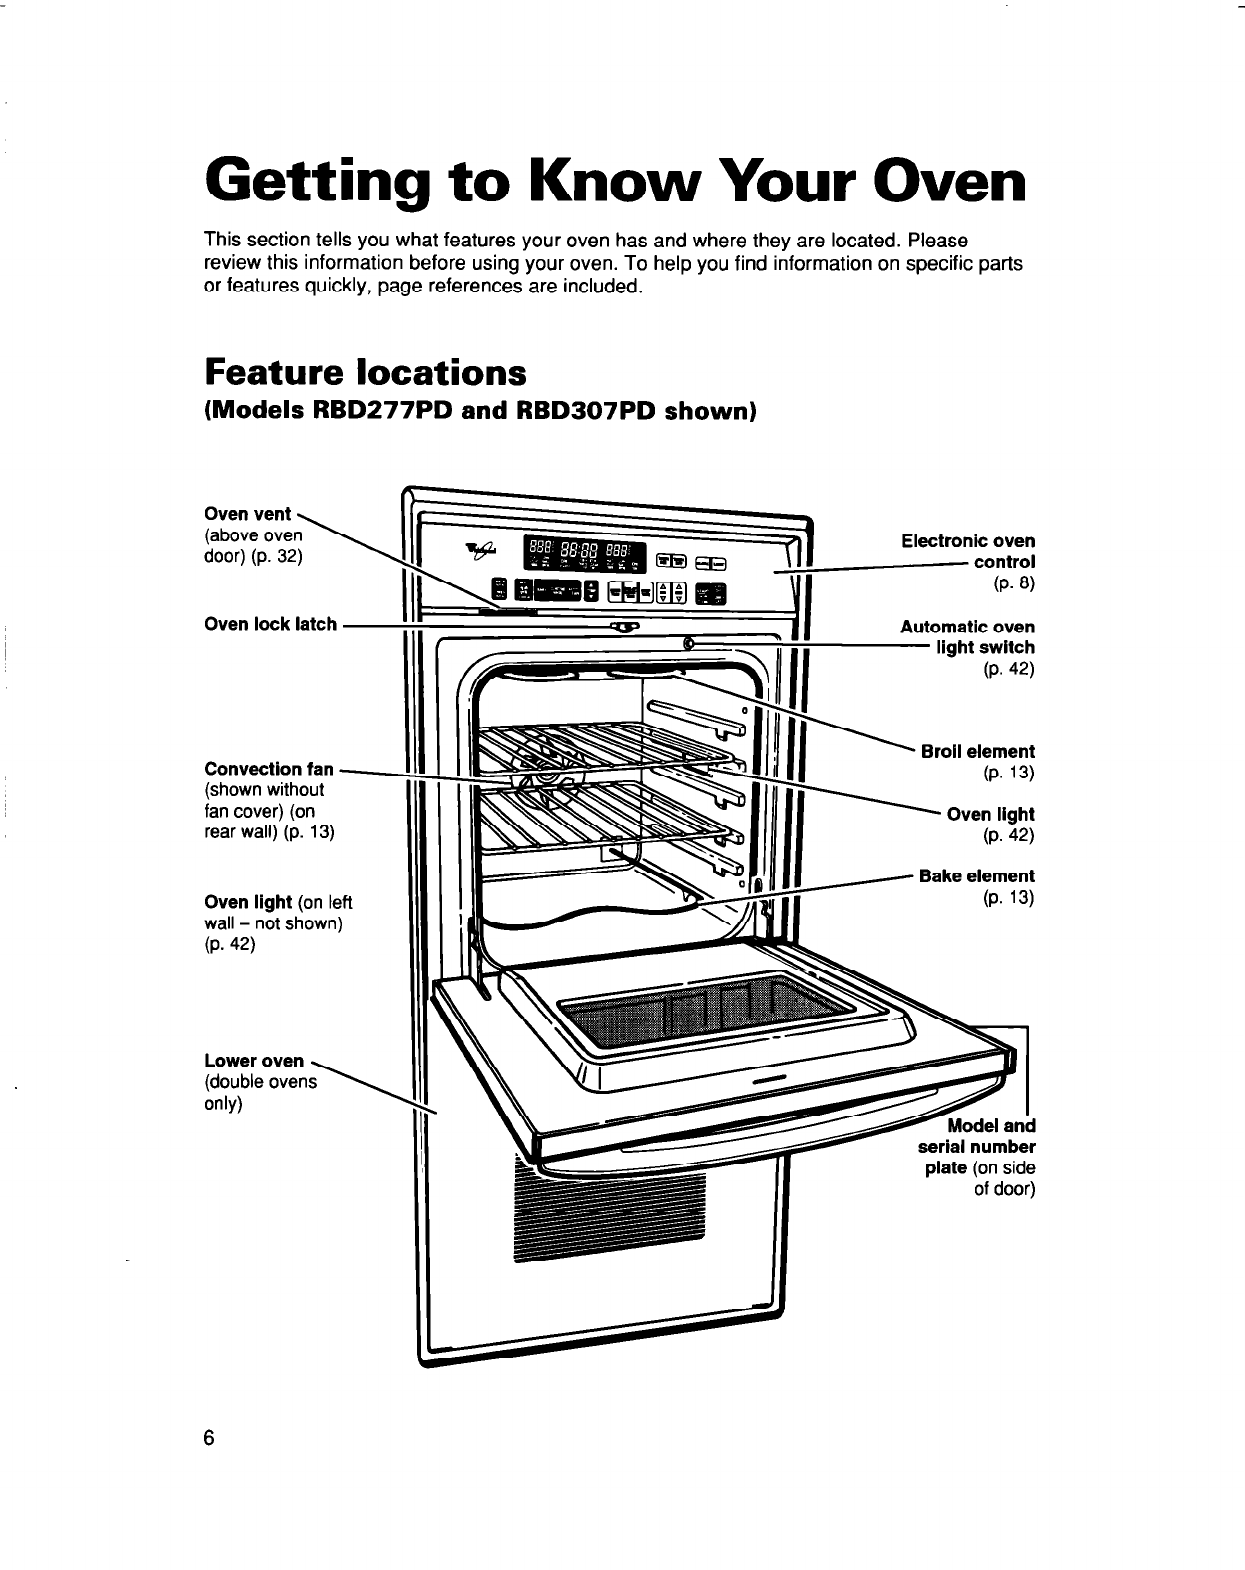 Page 6 of Whirlpool Convection Oven RBD277PD User Guide